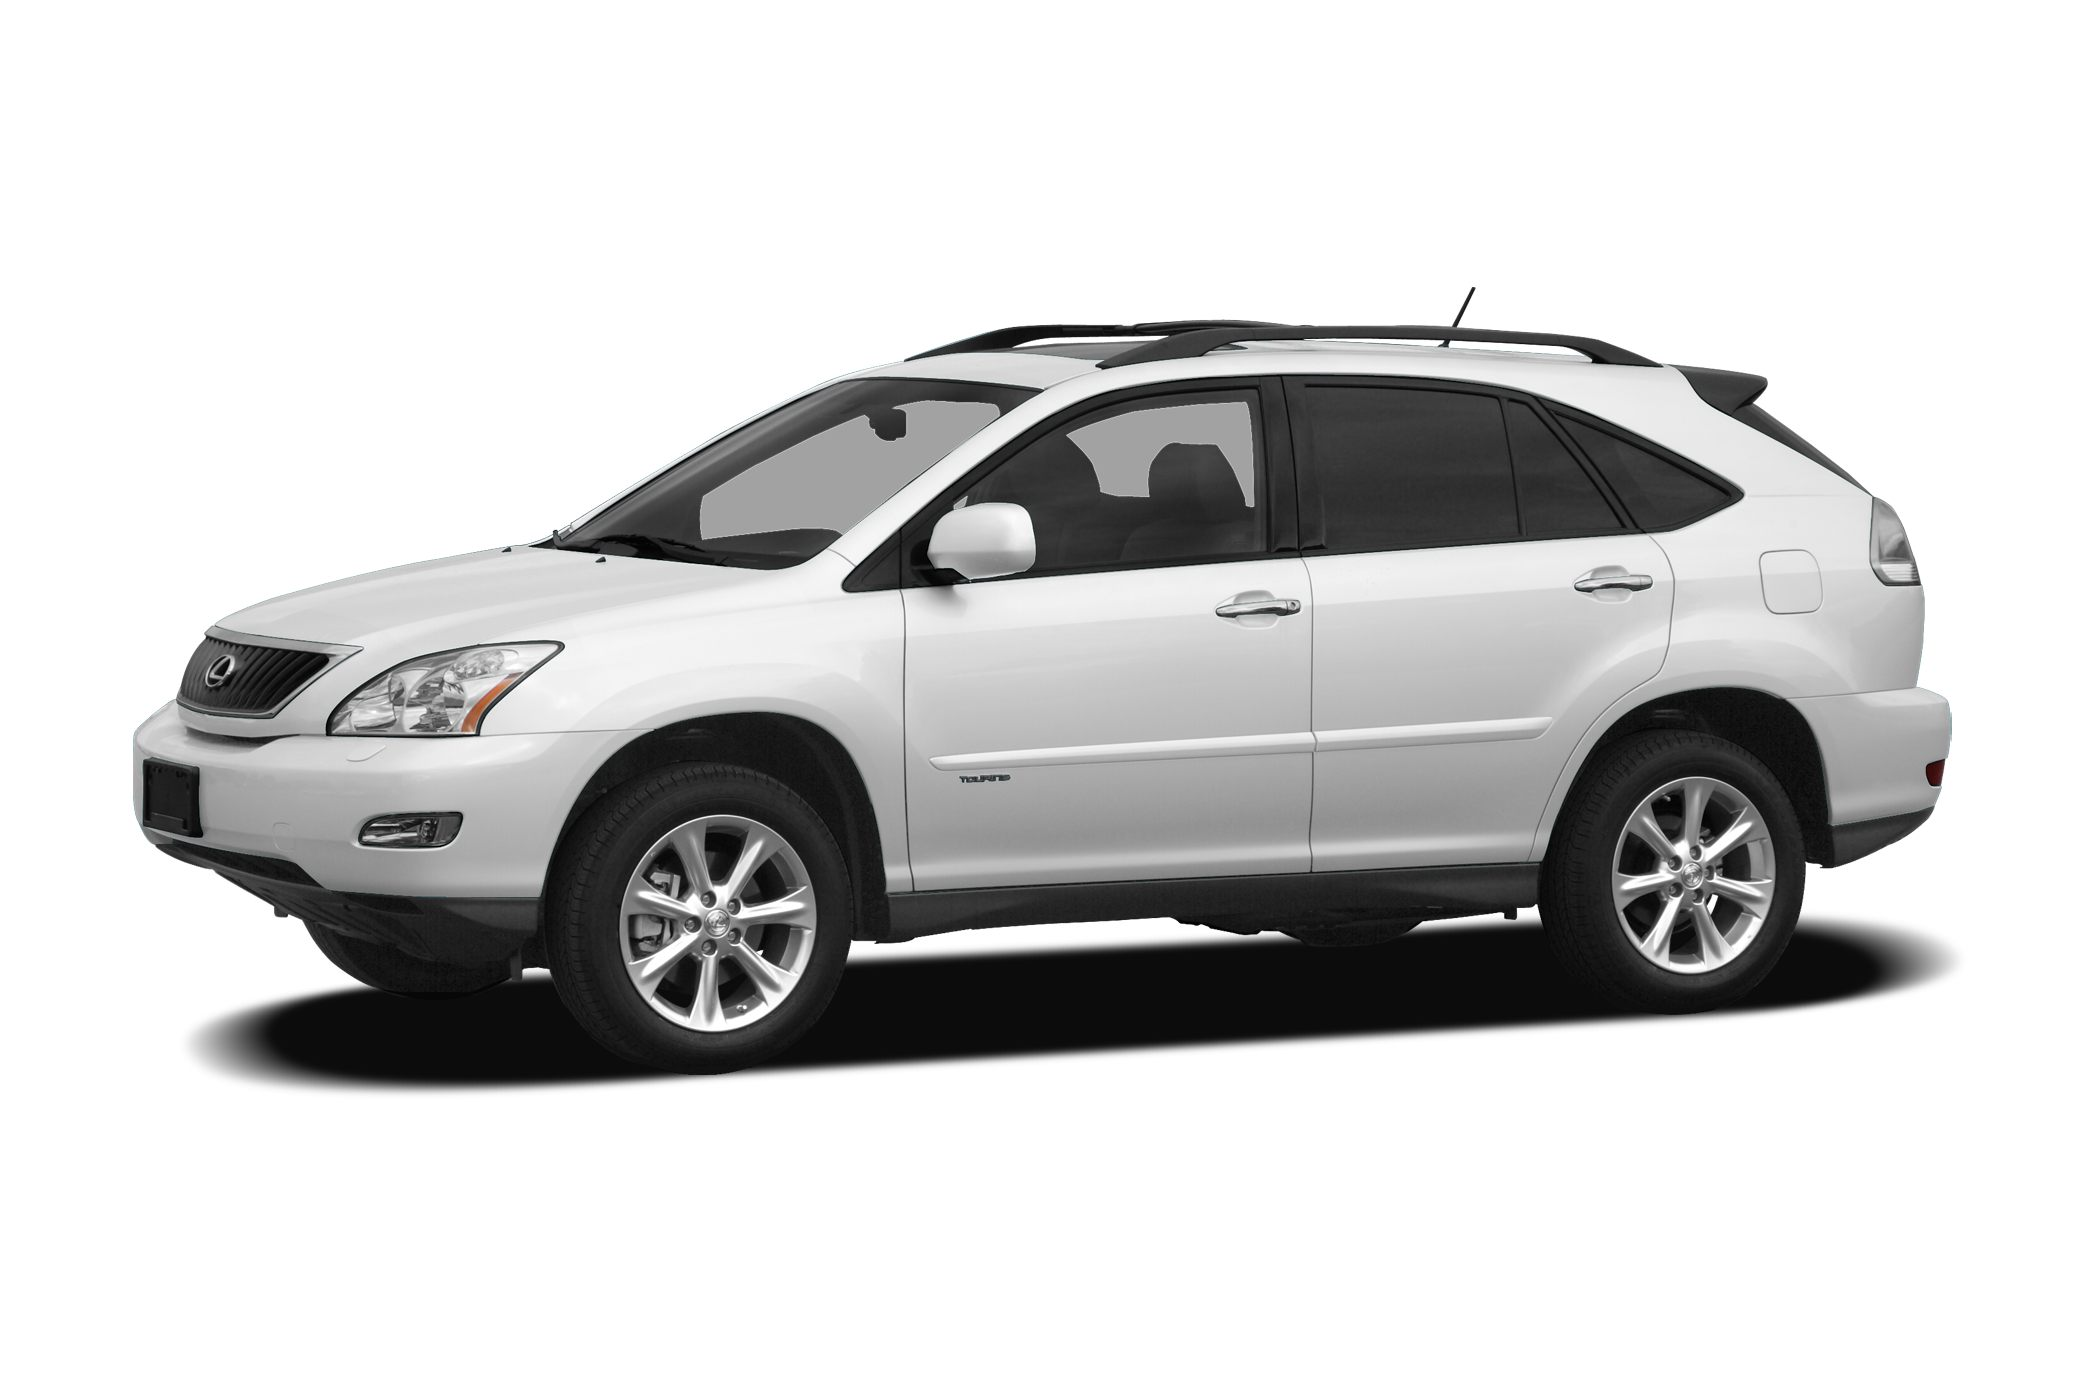 2008 Lexus RX 350 Base Snatch a bargain on this 2008 Lexus RX 350 4DR FWD before its too late Co